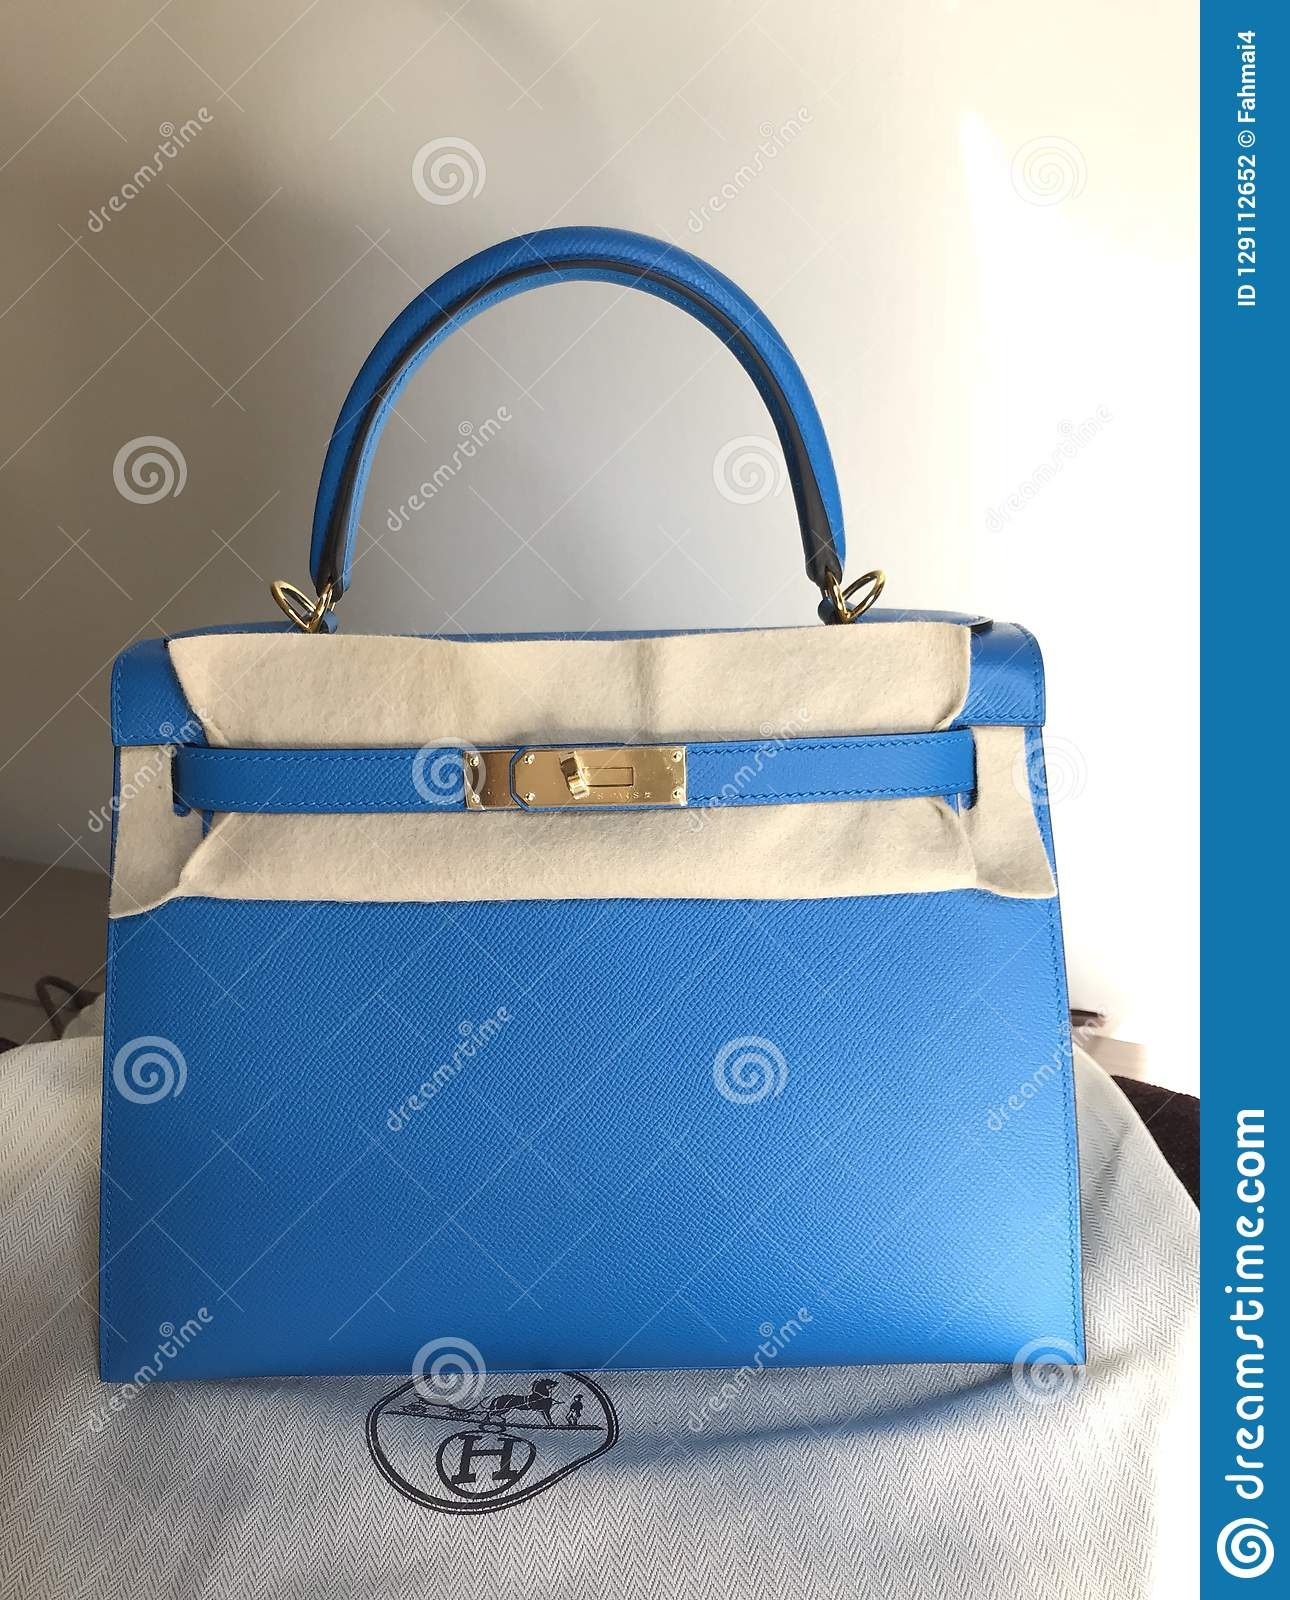 the luxury handbag Hermes kelly size 28 in blue zanzibar color epsom  leather and gold hardware. It is a dream bag for many women 161d68c49